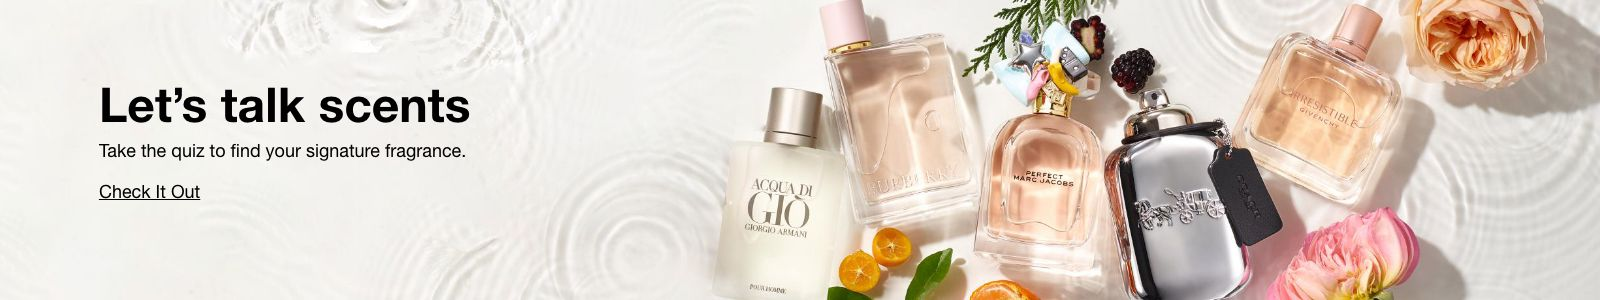 Let's talk scents, Take the quiz to find your signature fragrance, Check it Out